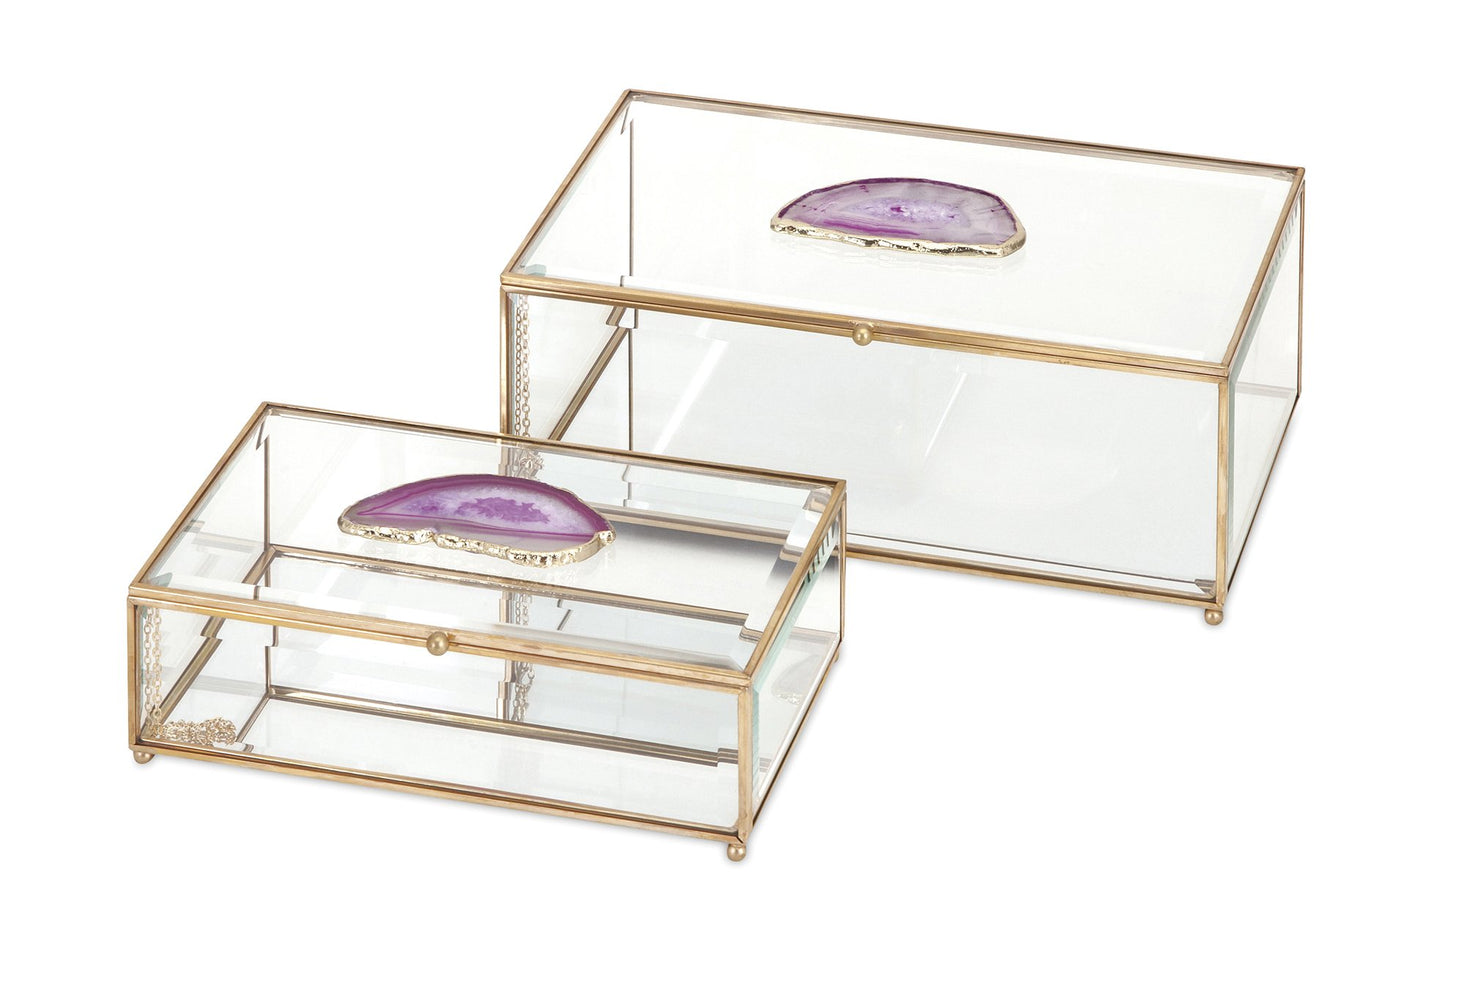 Maison-Glass-and-Agate-Boxes